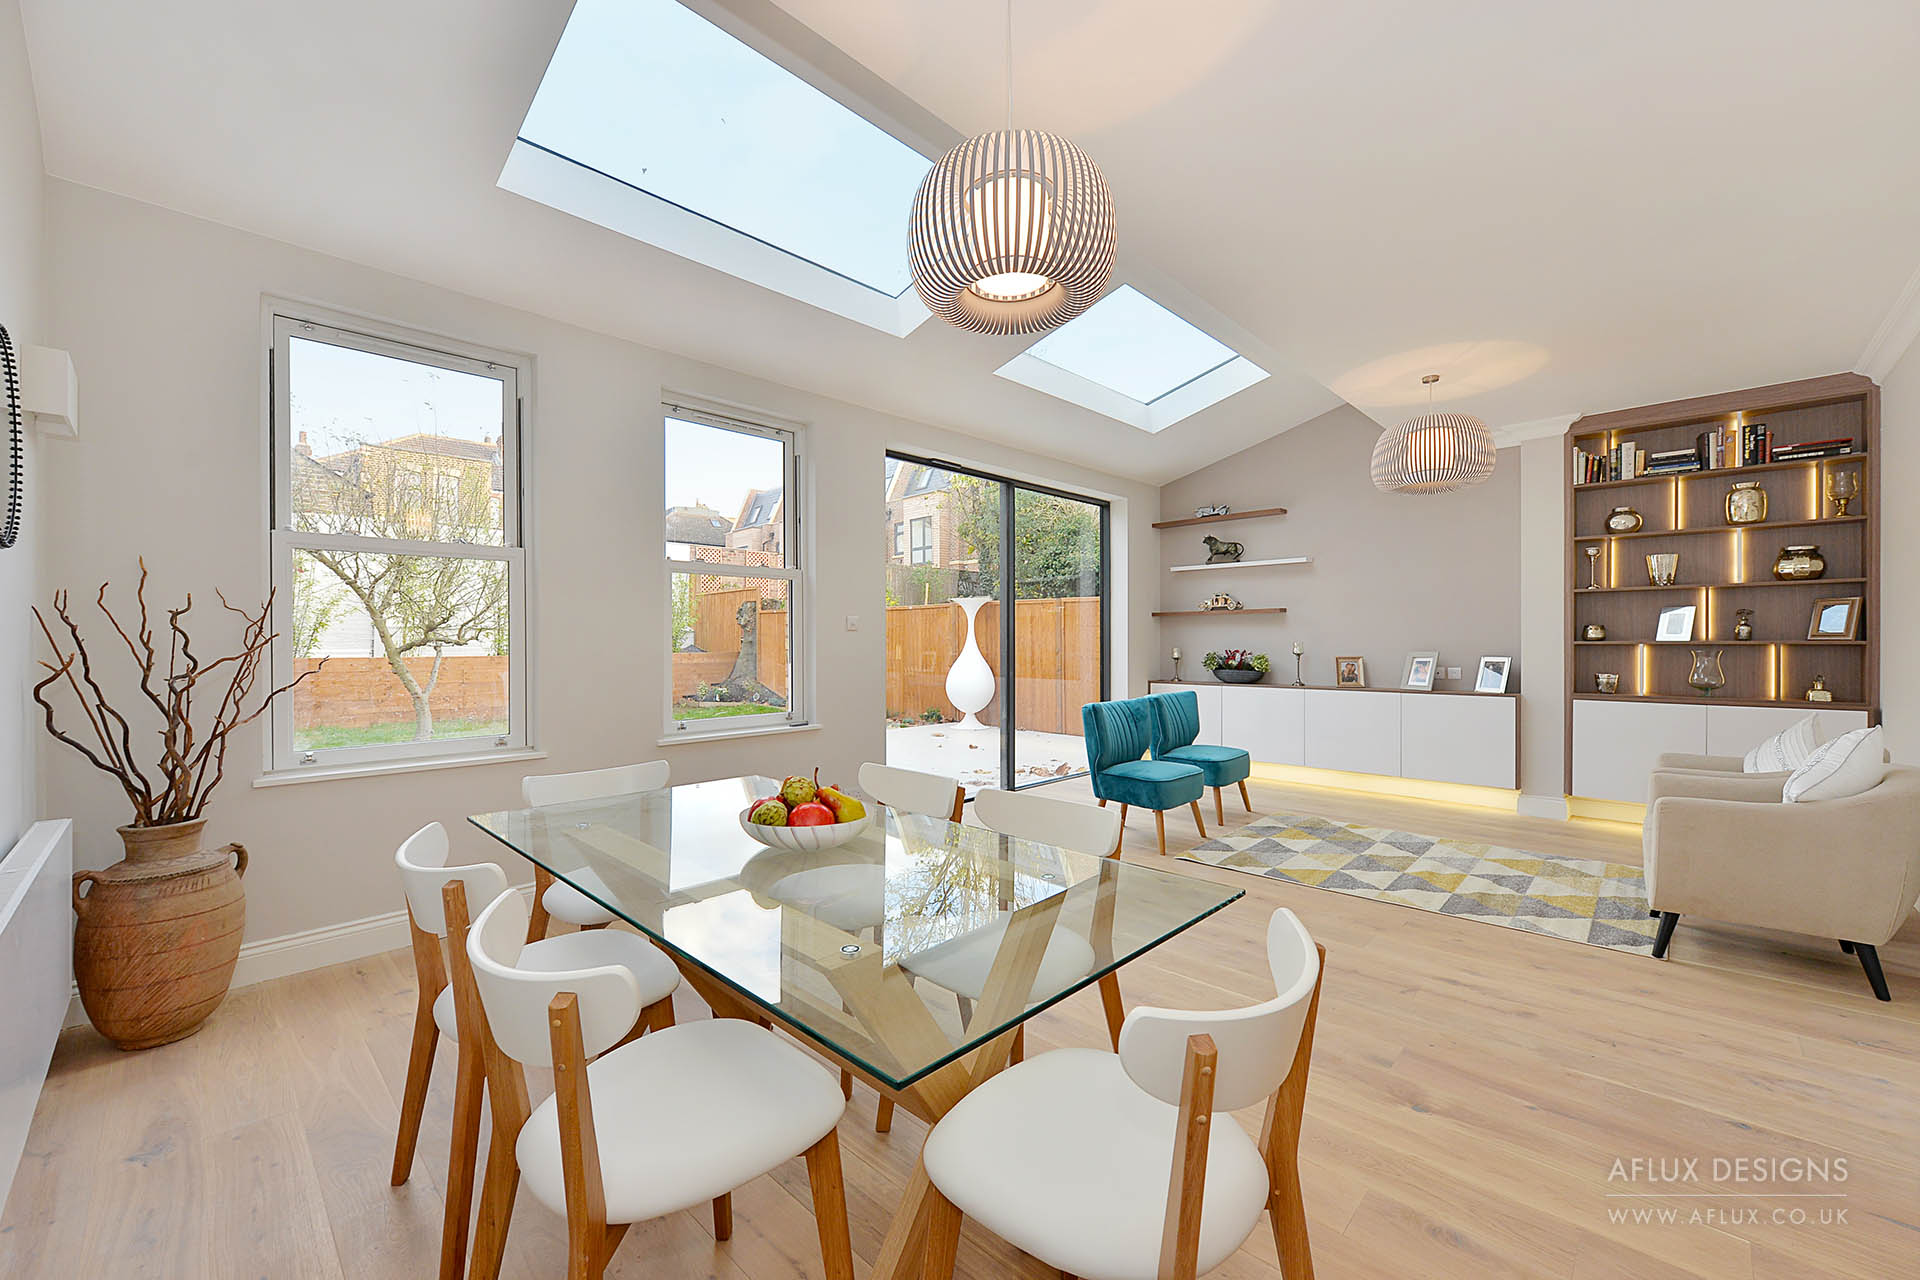 Ealing - LONDON W3A large family home bought by a developer and fully renovated into three spacious flats, including a loft conversion and rear extension.